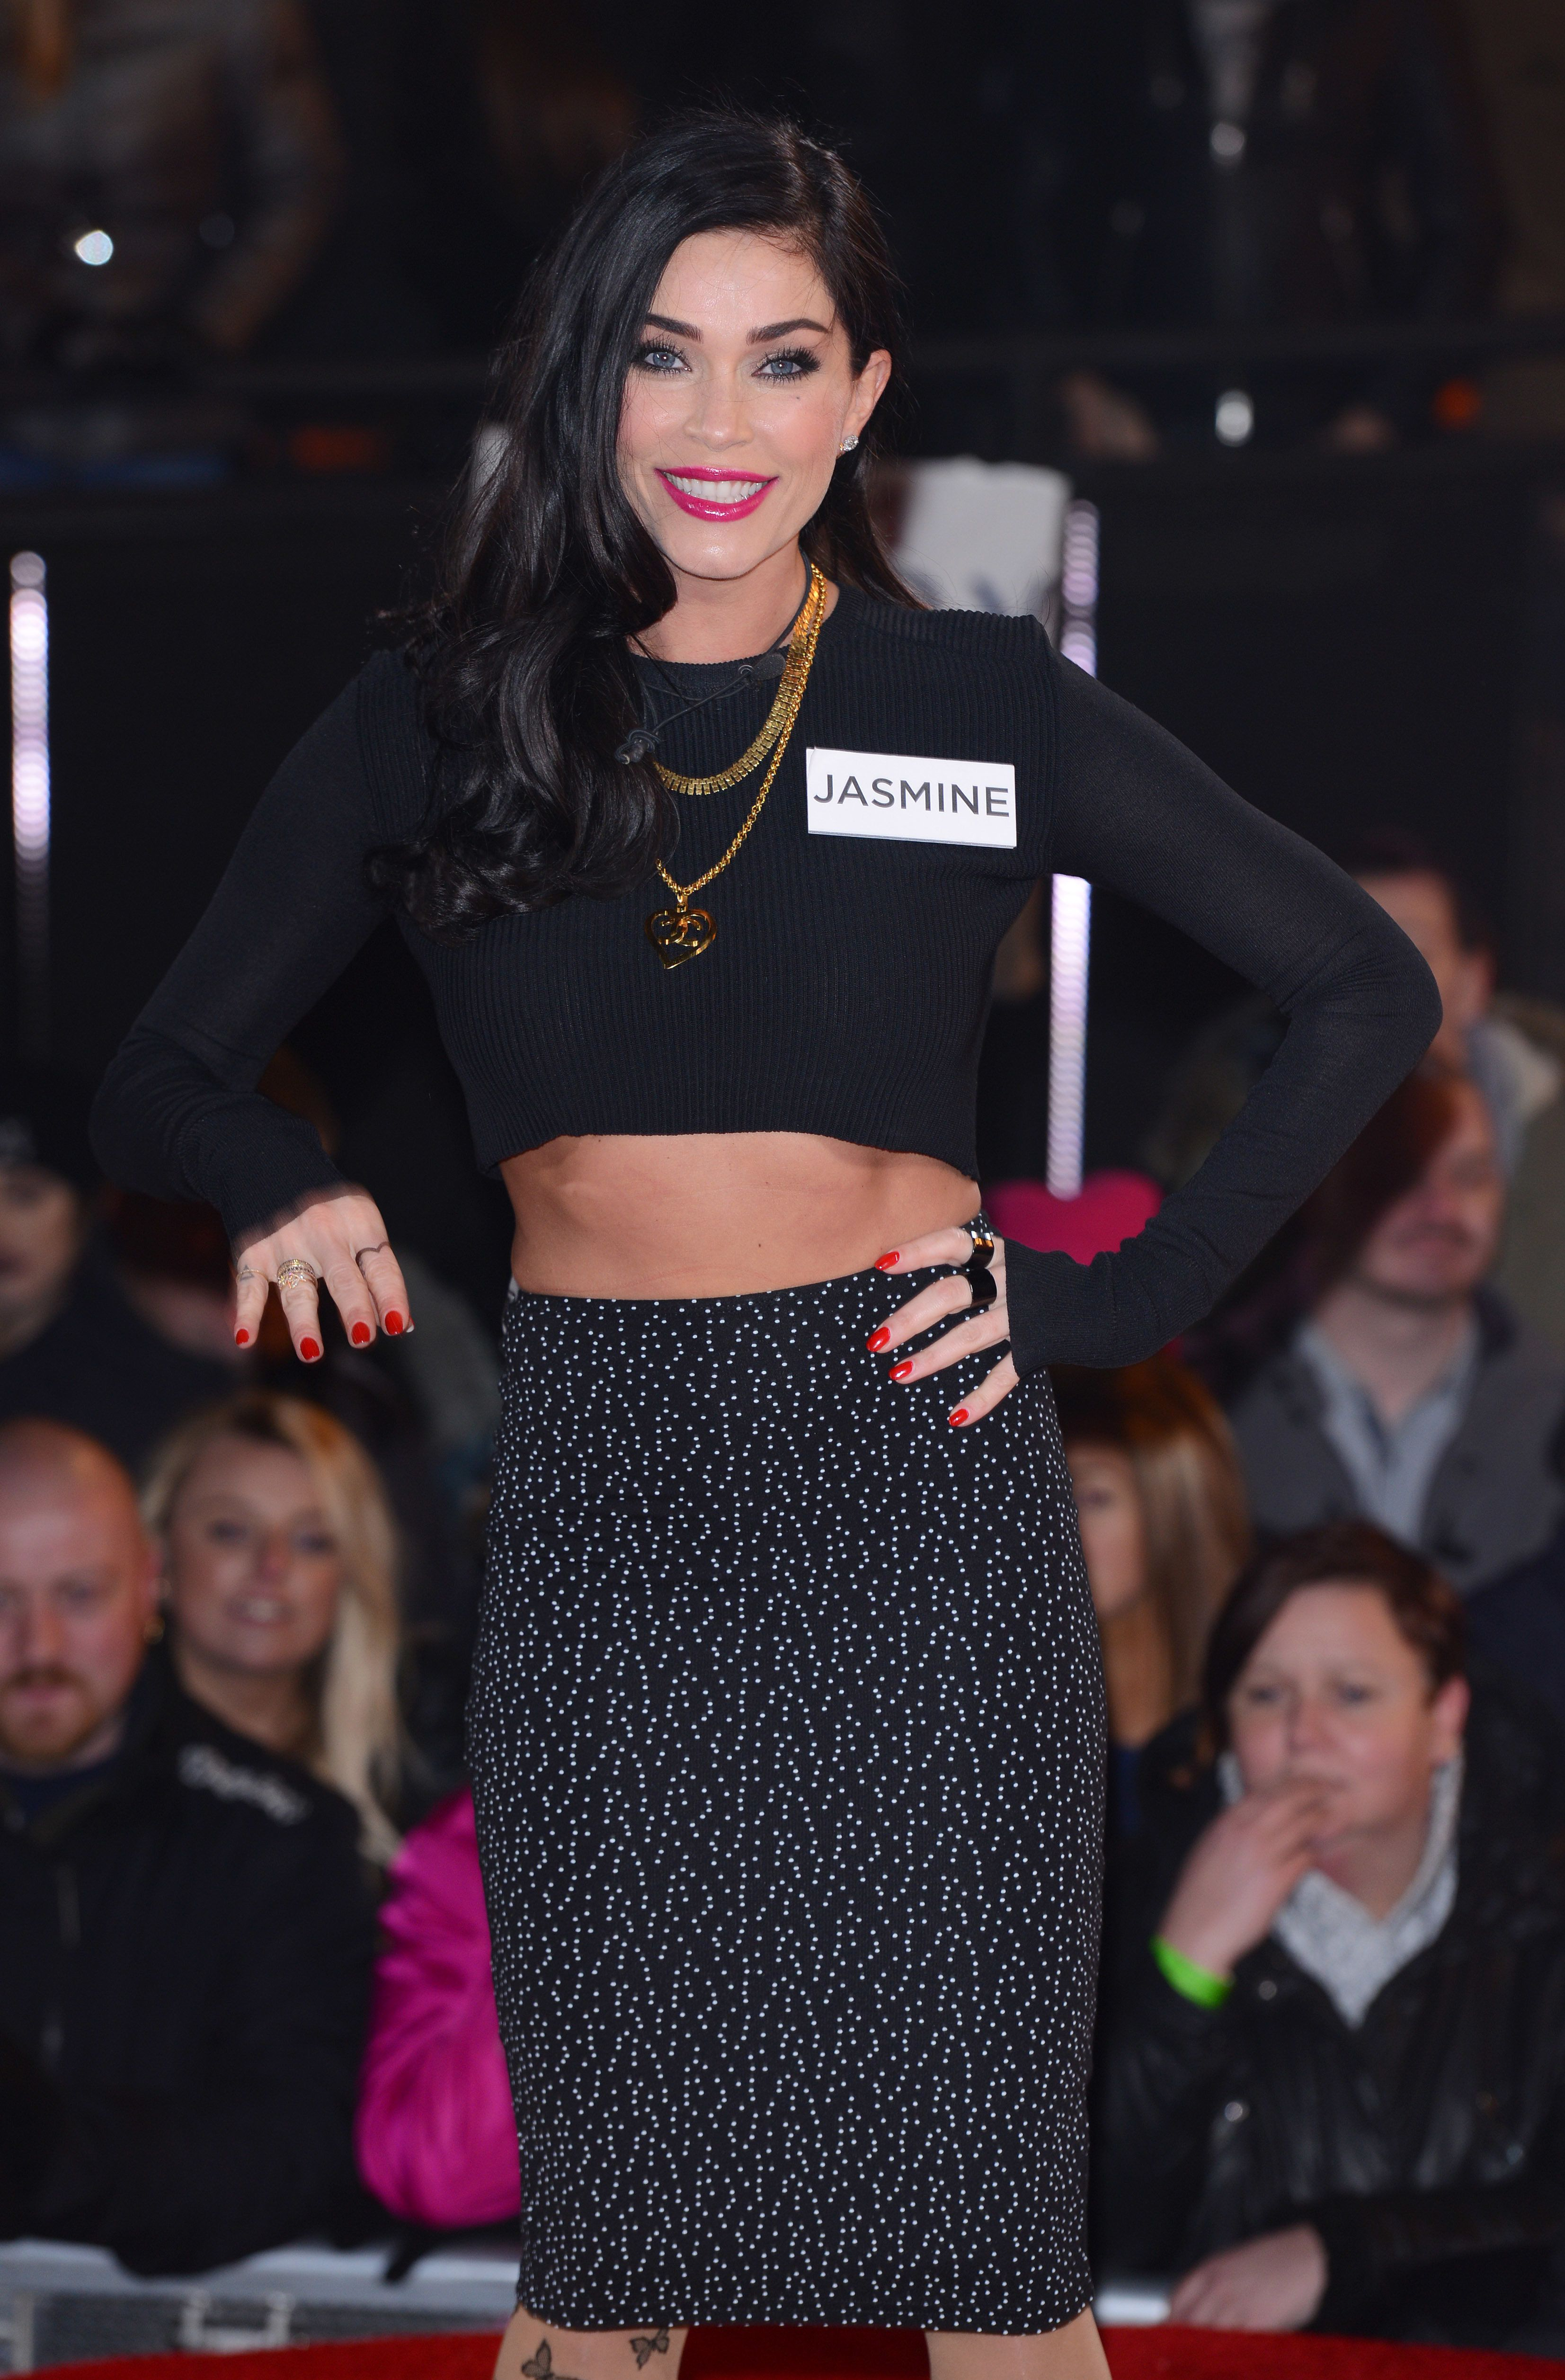 Who's Ready For The 'Celebrity Big Brother' Return Of Jasmine